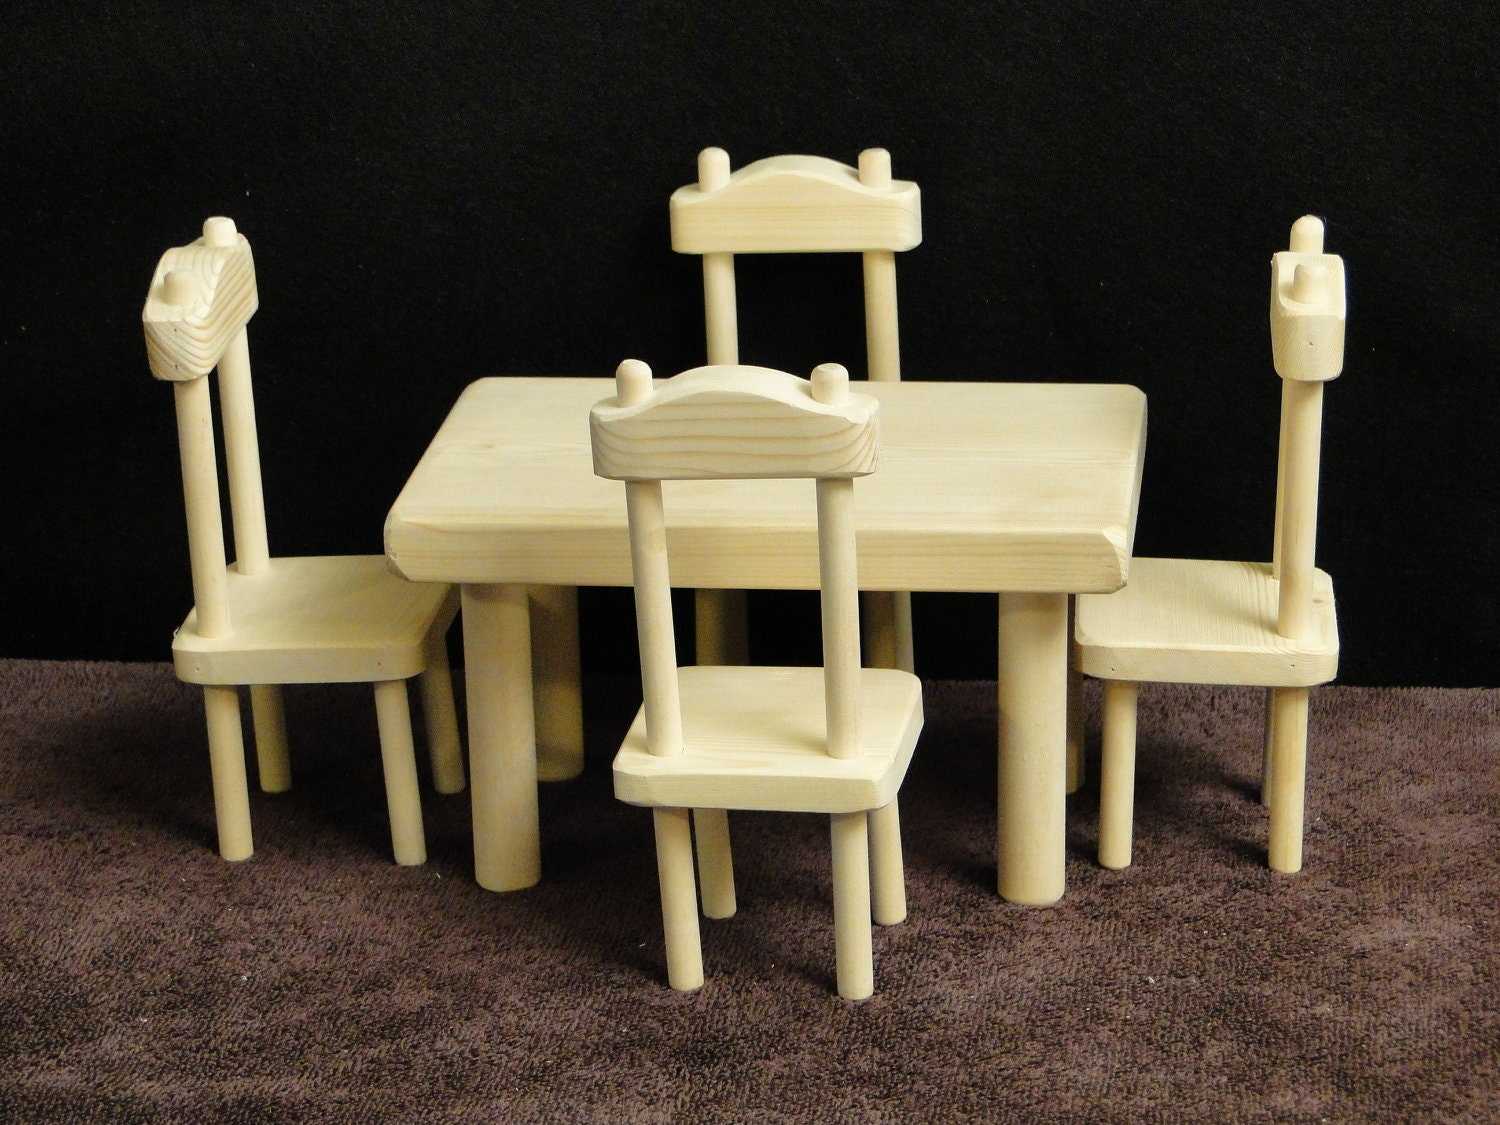 Square table and chair set for 12 inch barbie dolls 052 for 12 inch square table